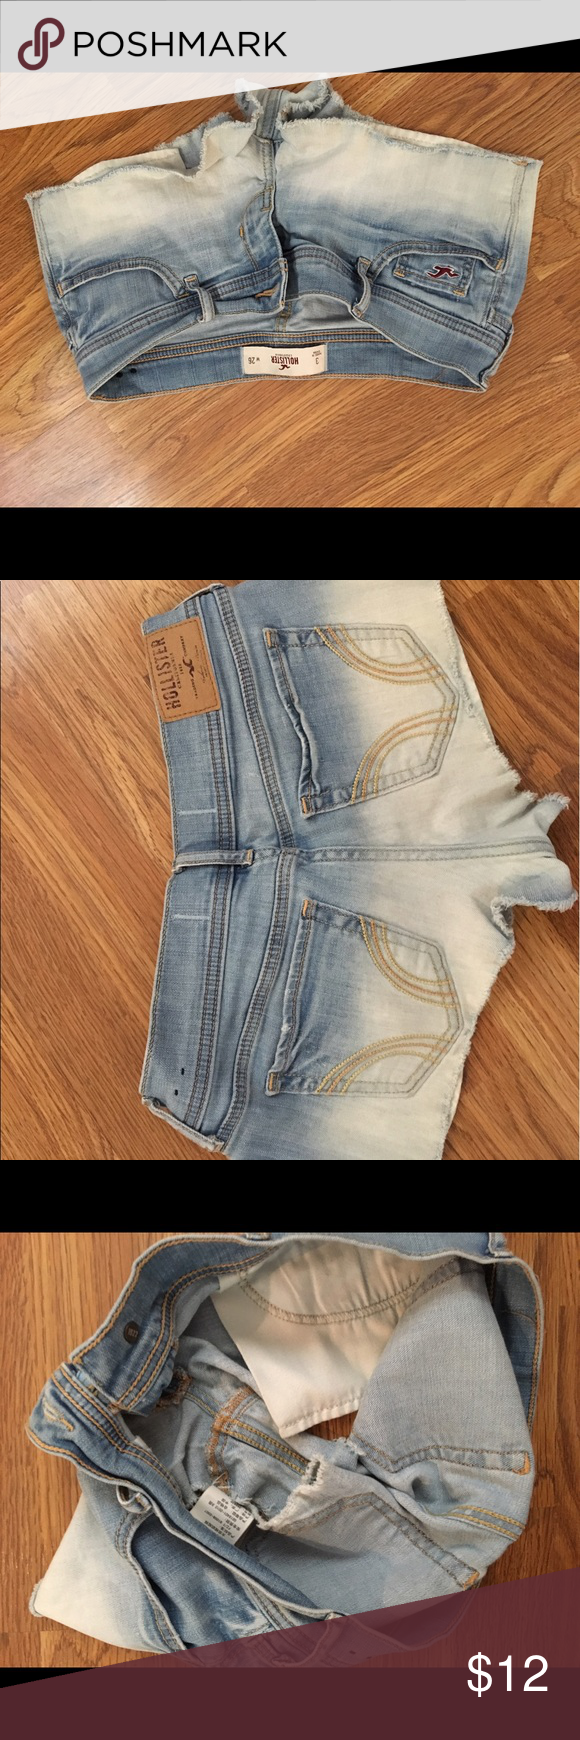 Hollister Jean Shorts Size 3 Like New Hollister Jean shorts. Size 3. No stains or sign of wear. Price is not firm :) Hollister Shorts Jean Shorts